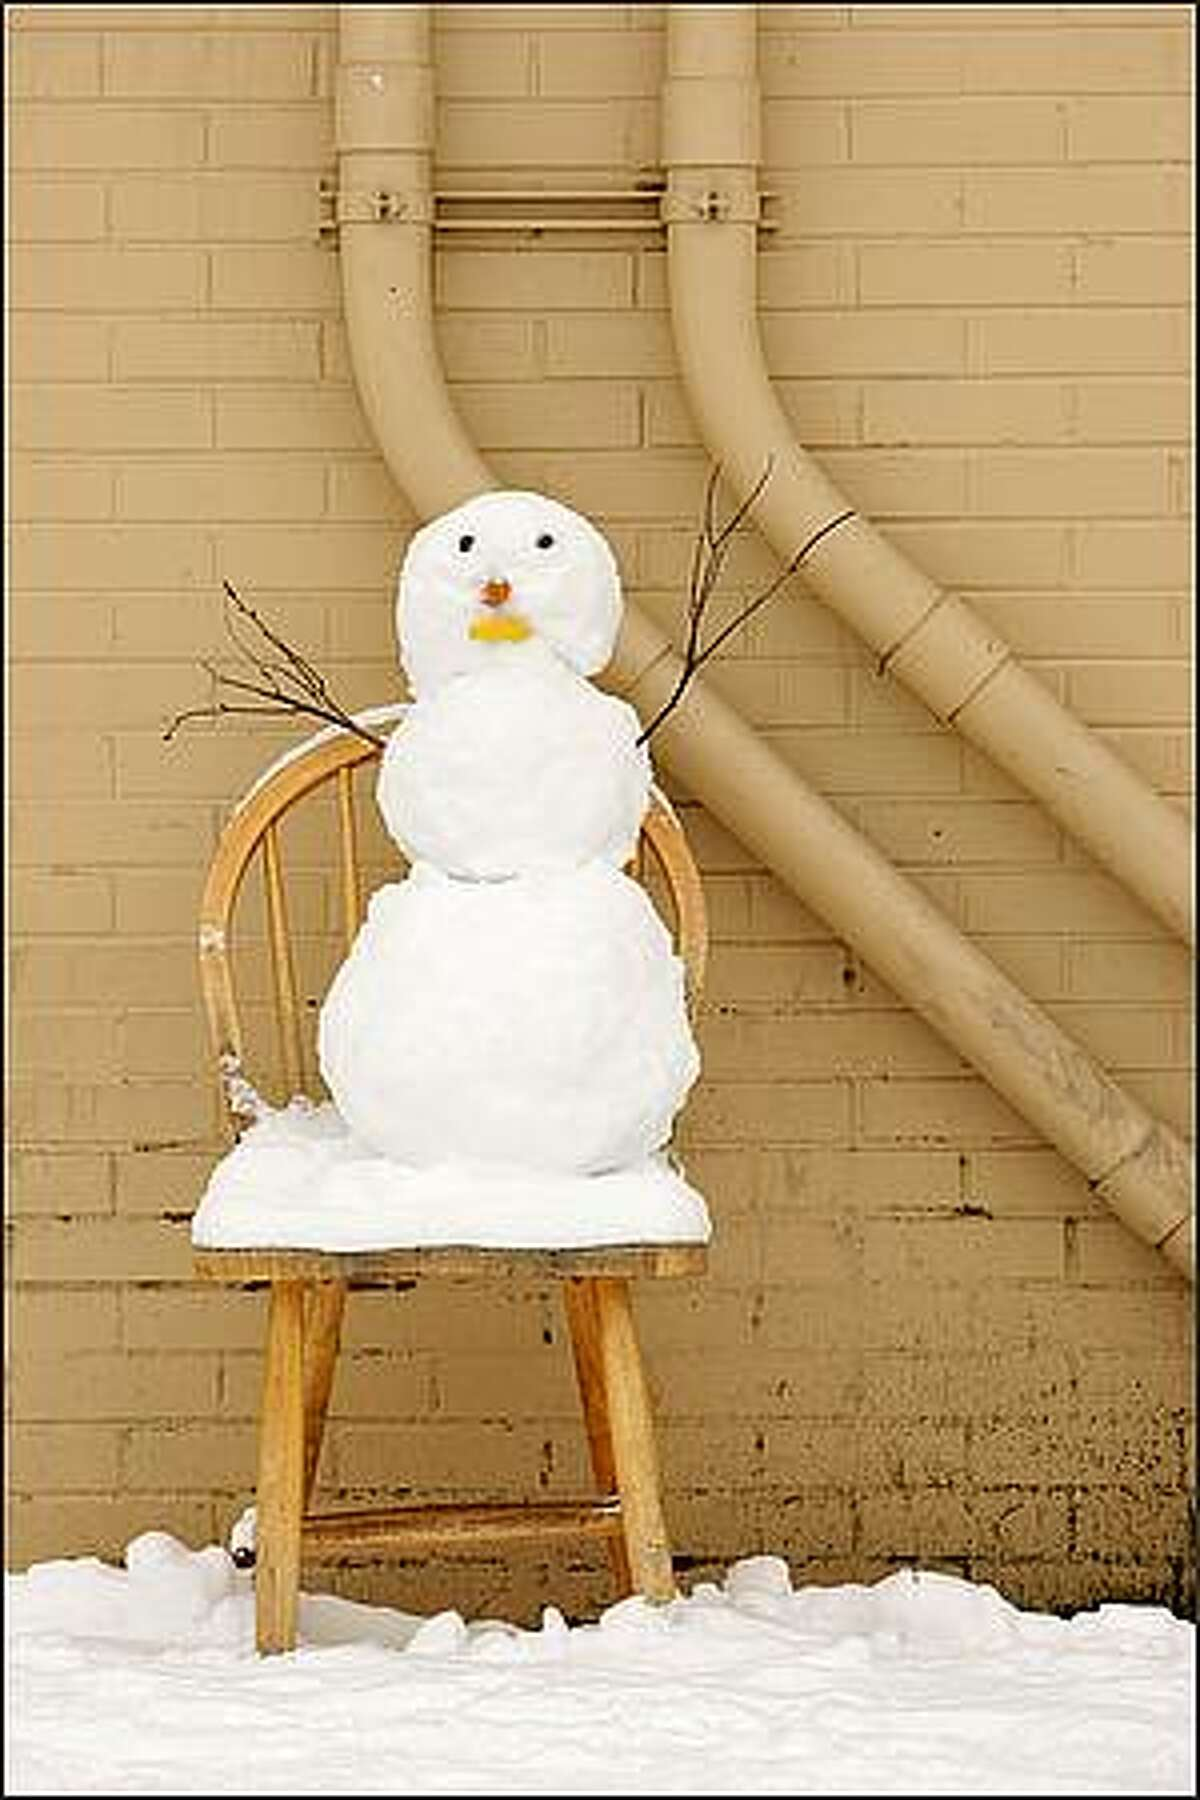 A small snowman takes a load off in the Wallingford neighborhood of Seattle.